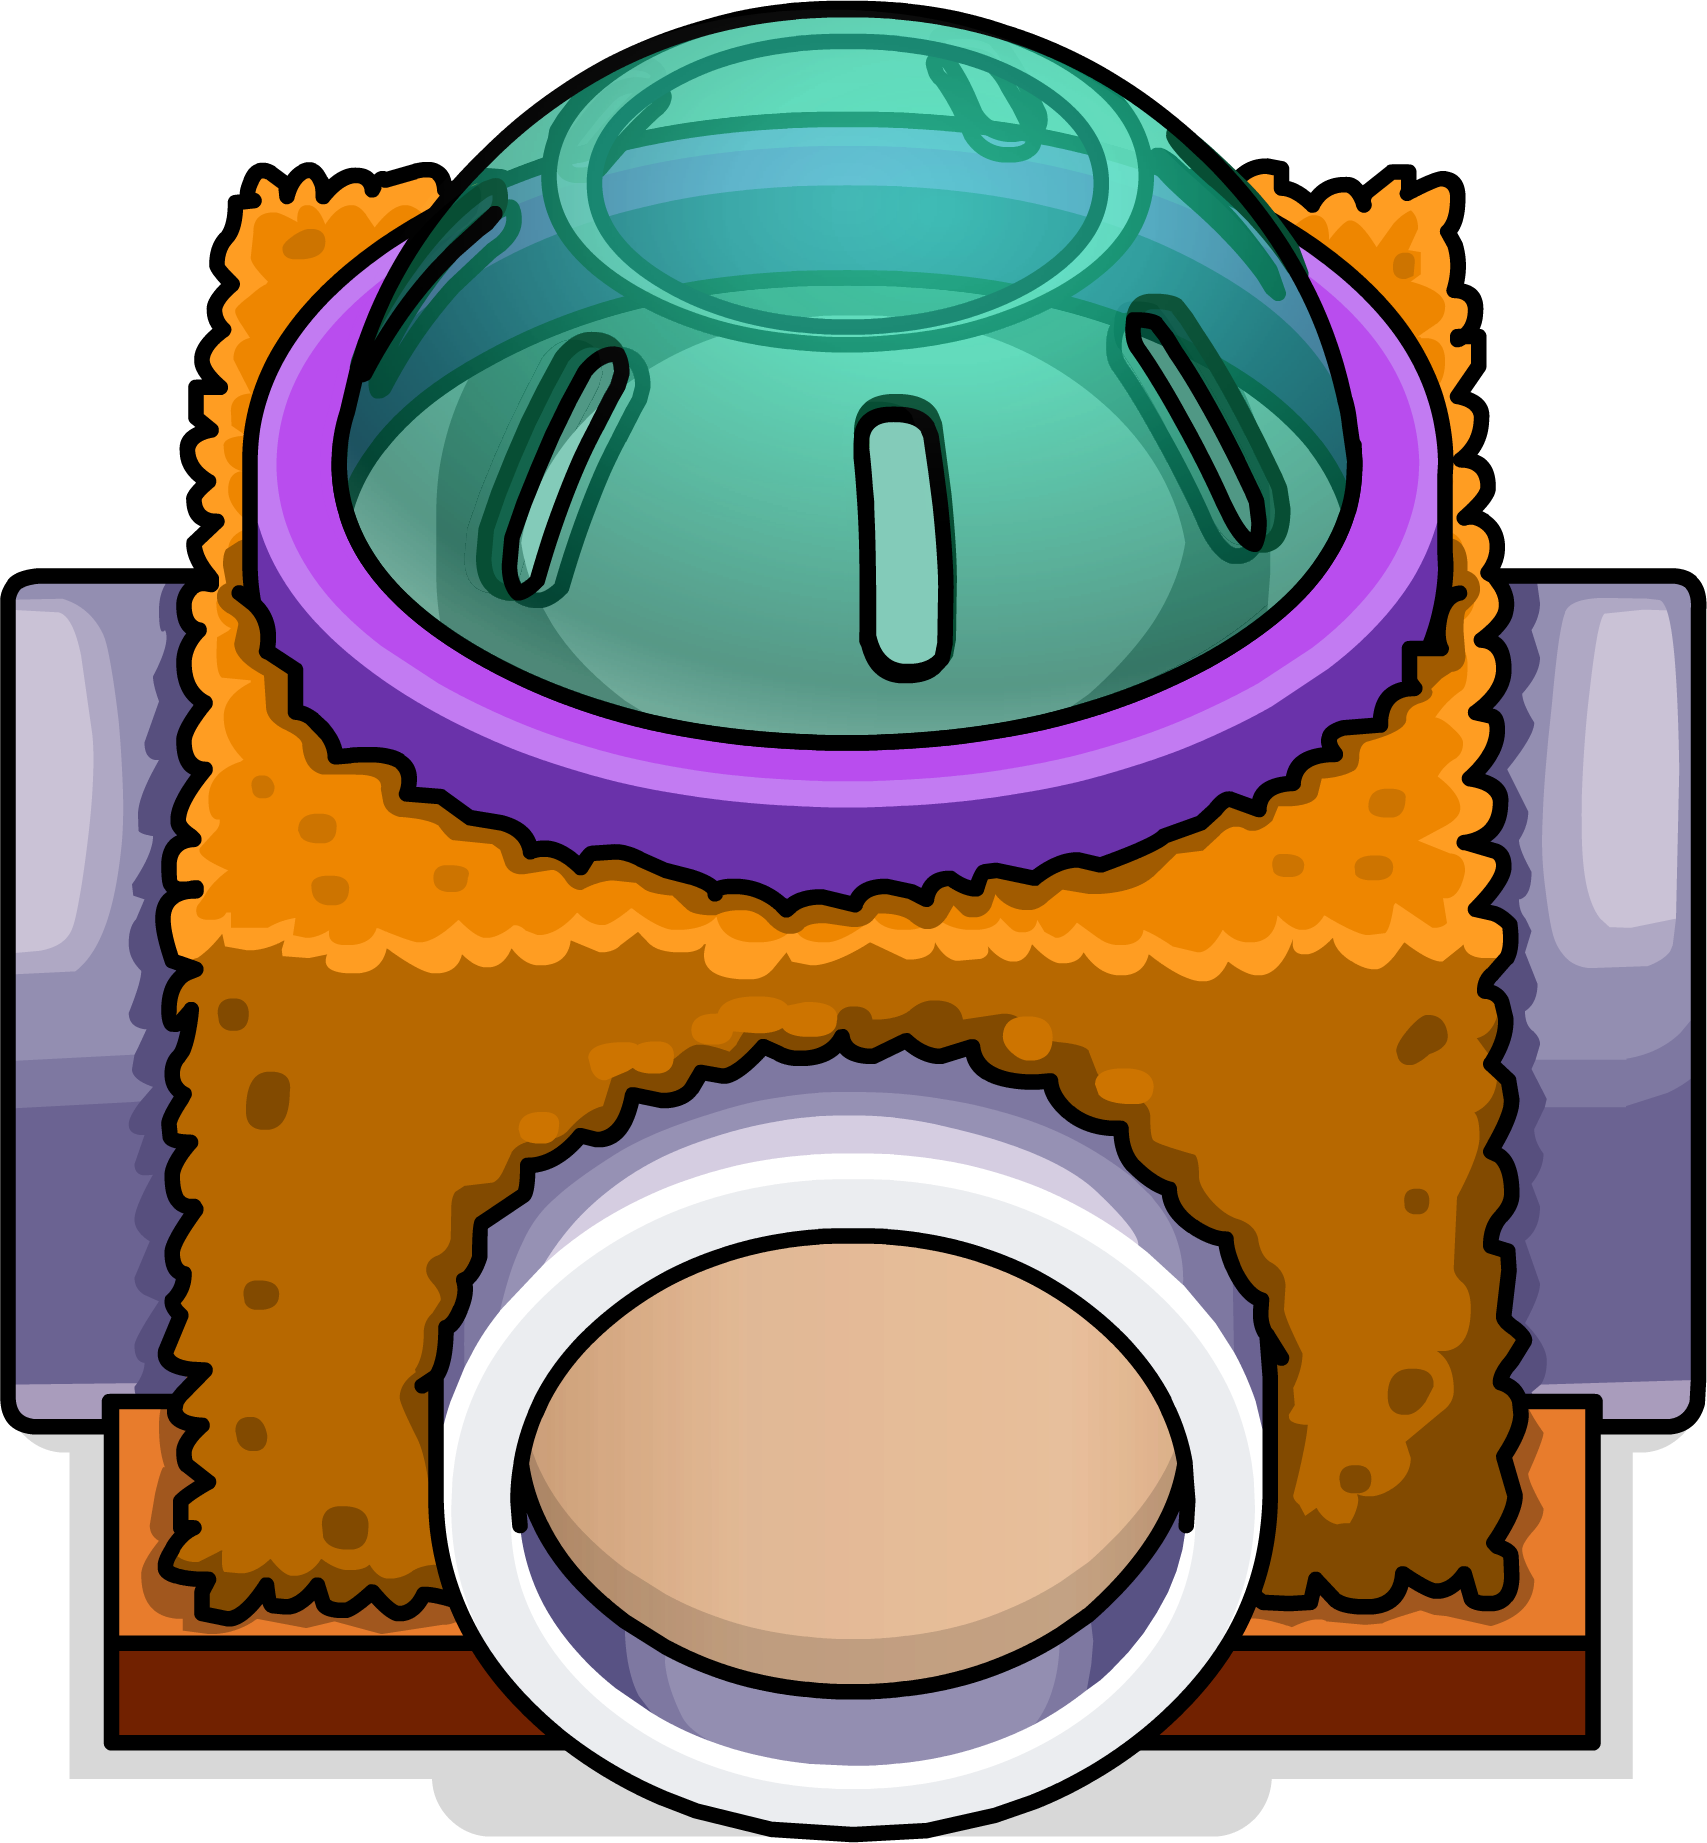 Dirty sprite 2 png. Image puffle tube box